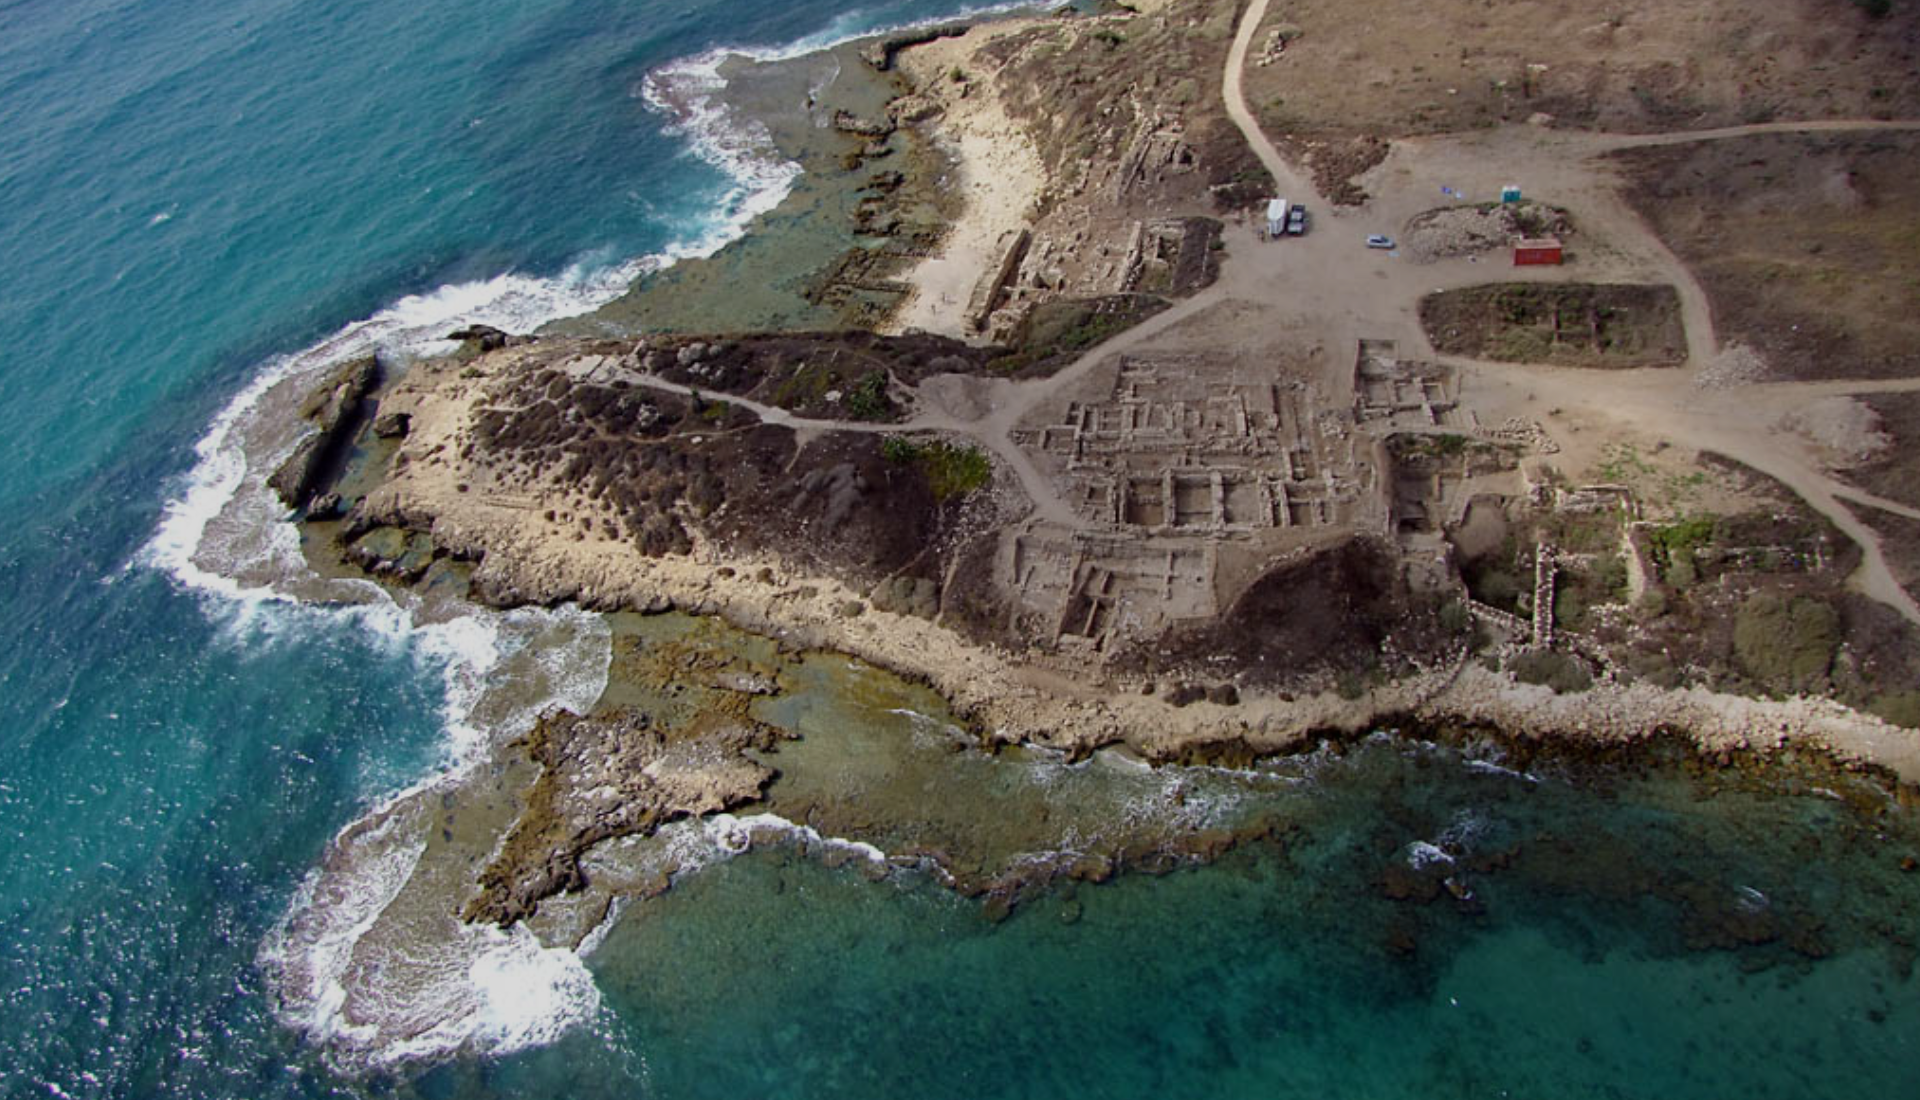 Rising Seas >> Scripps Center for Marine Archaeology - UC San Diego Scripps Institution of Oceanography and ...